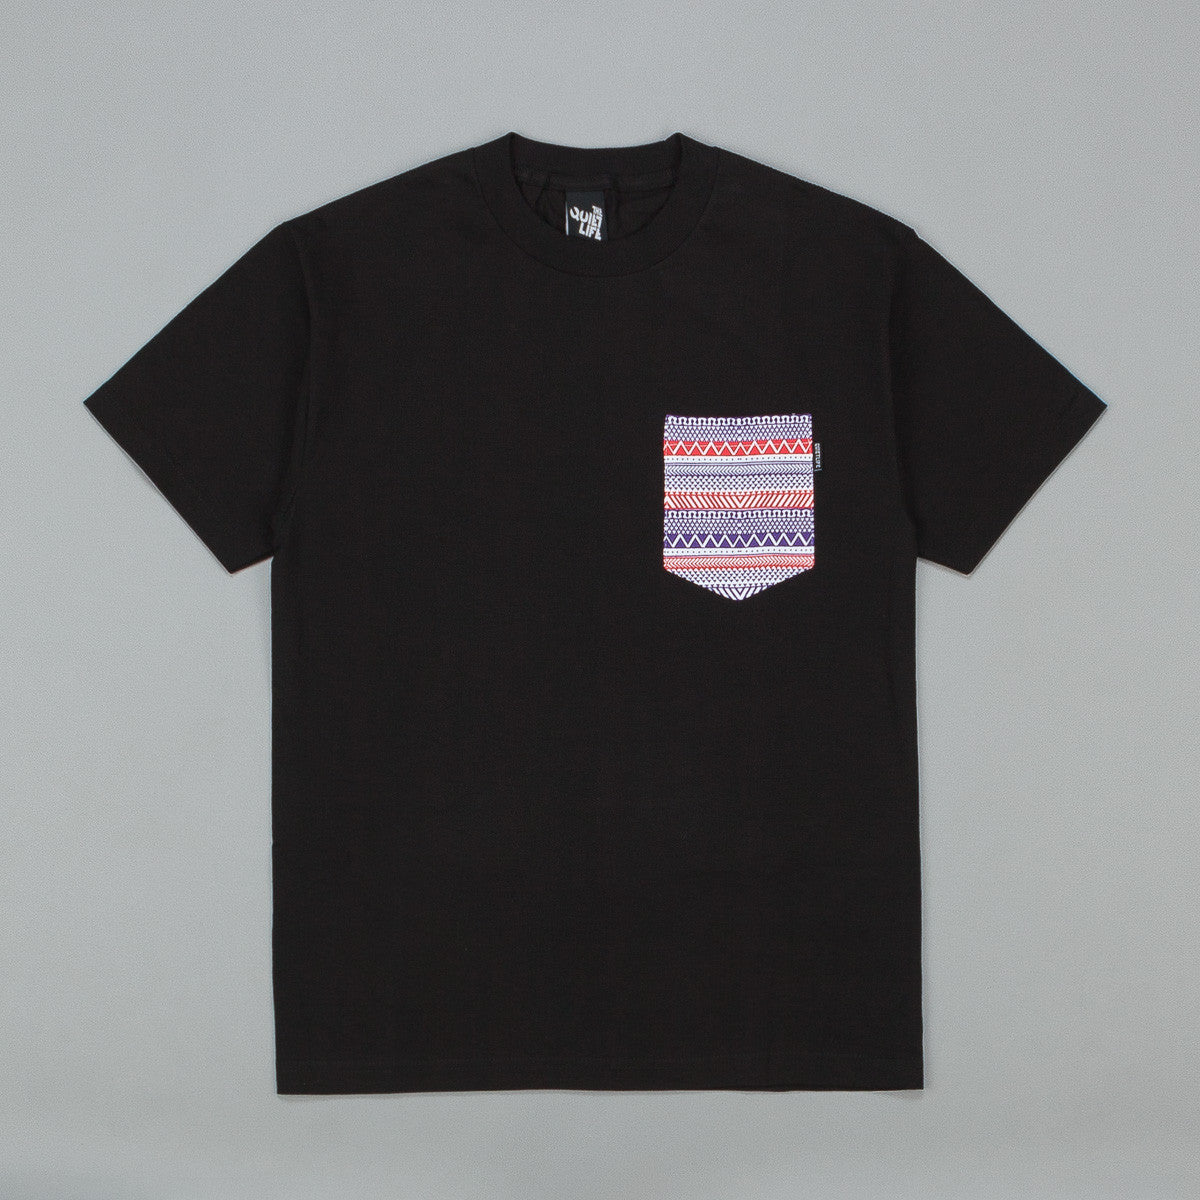 The Quiet Life Our Tribe T-Shirt - Black